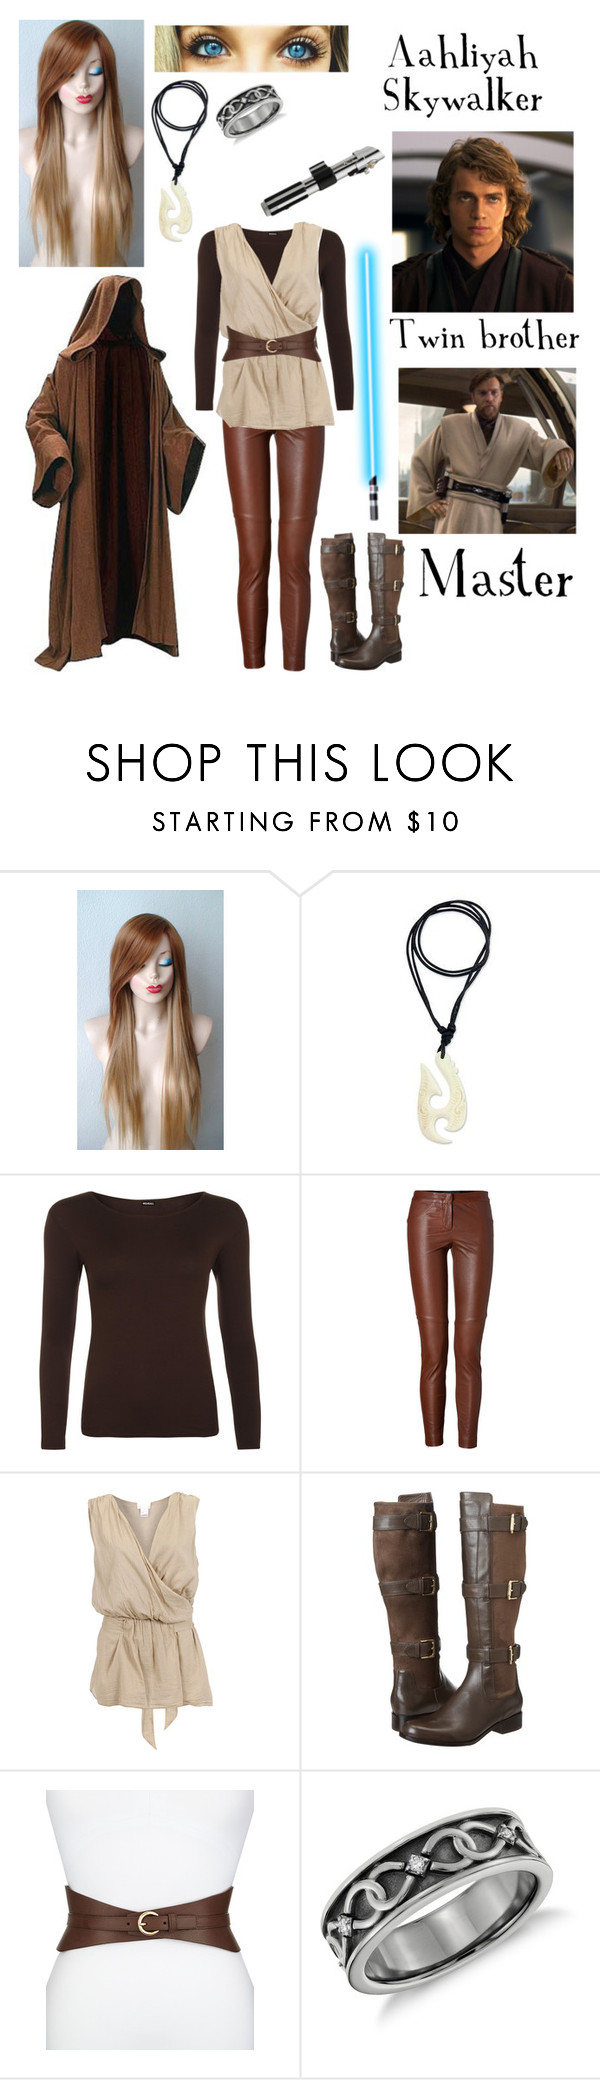 """""""Star Wars OC"""" by nebulaprime ❤ liked on Polyvore featuring beauty, NOVICA, WearAll, A.L.C., 2Love TonyCohen, Cole Haan, Neiman Marcus and Blue Nile"""